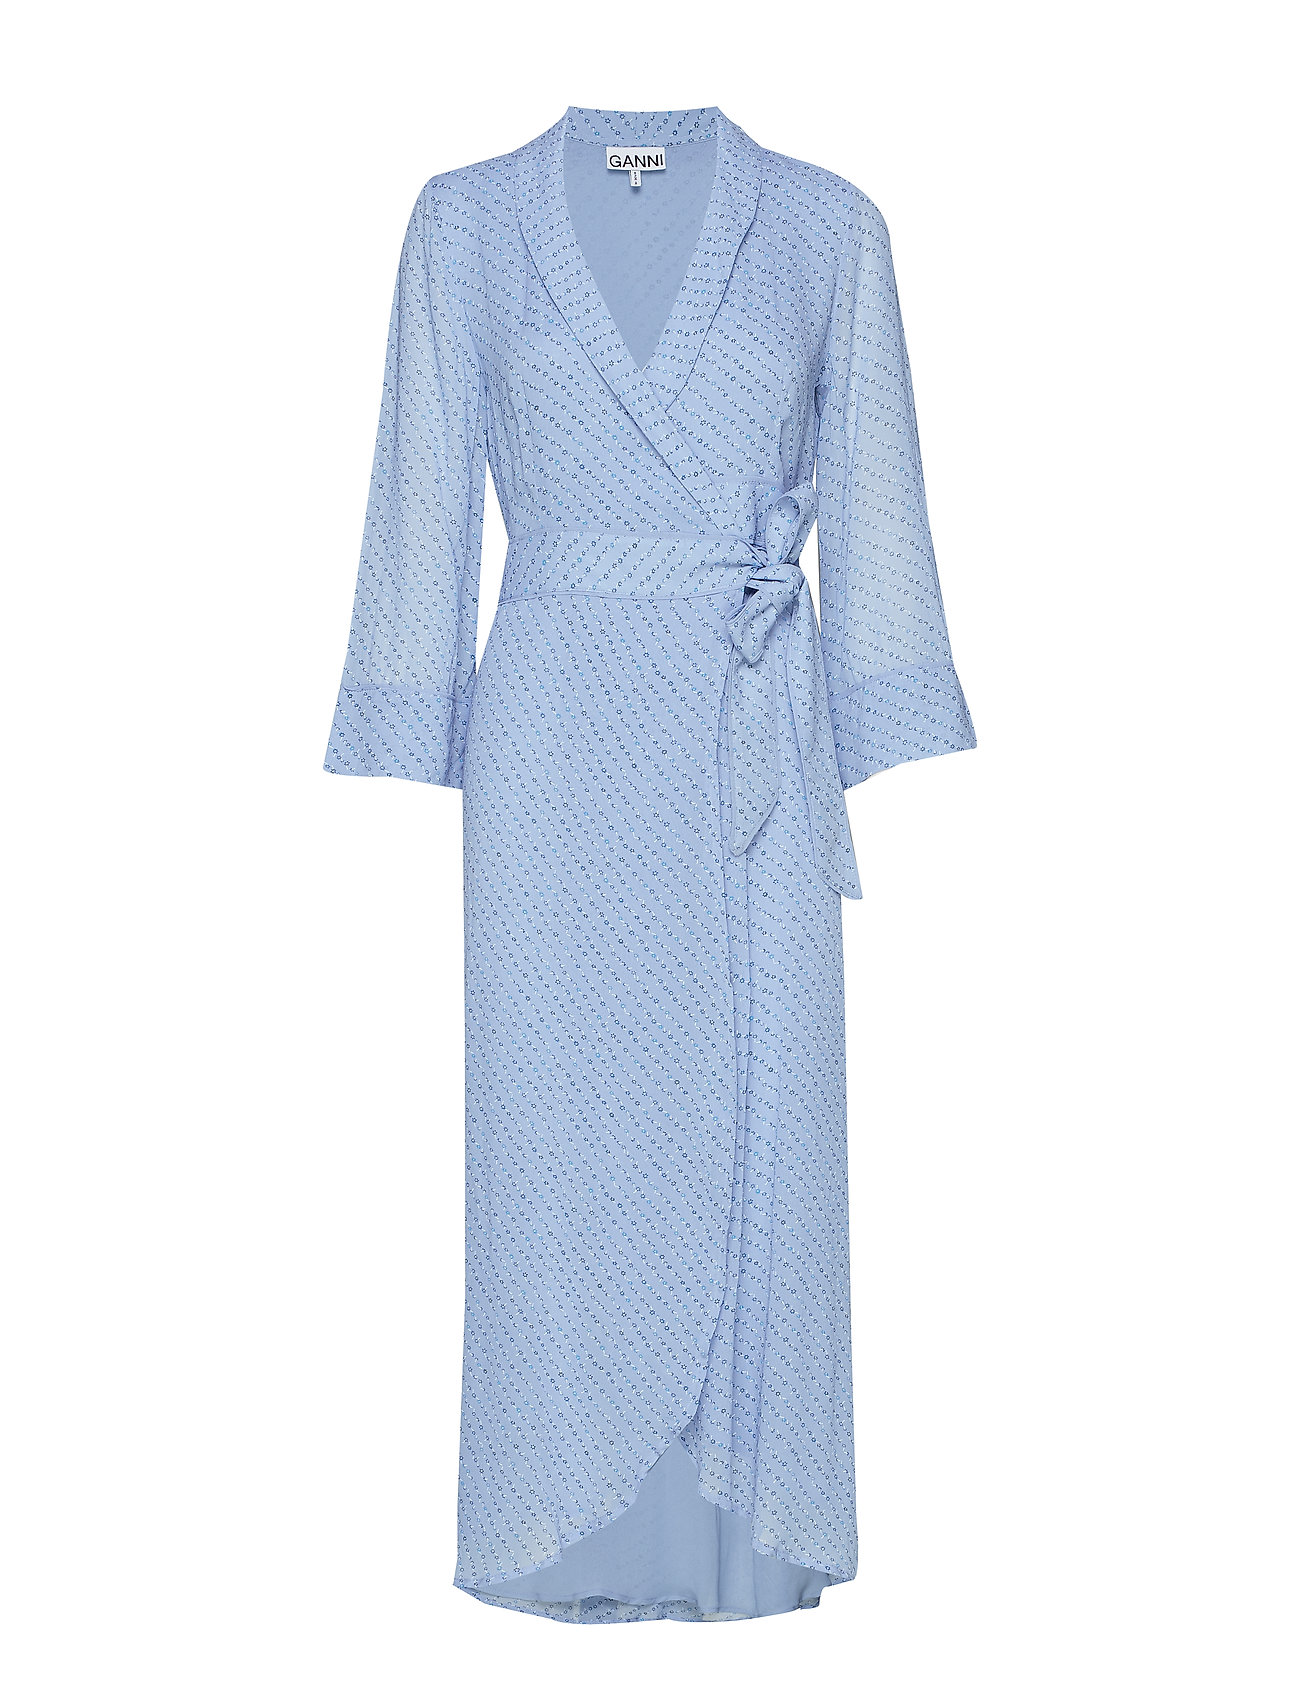 Ganni Printed Georgette Wrap Dress - FOREVER BLUE